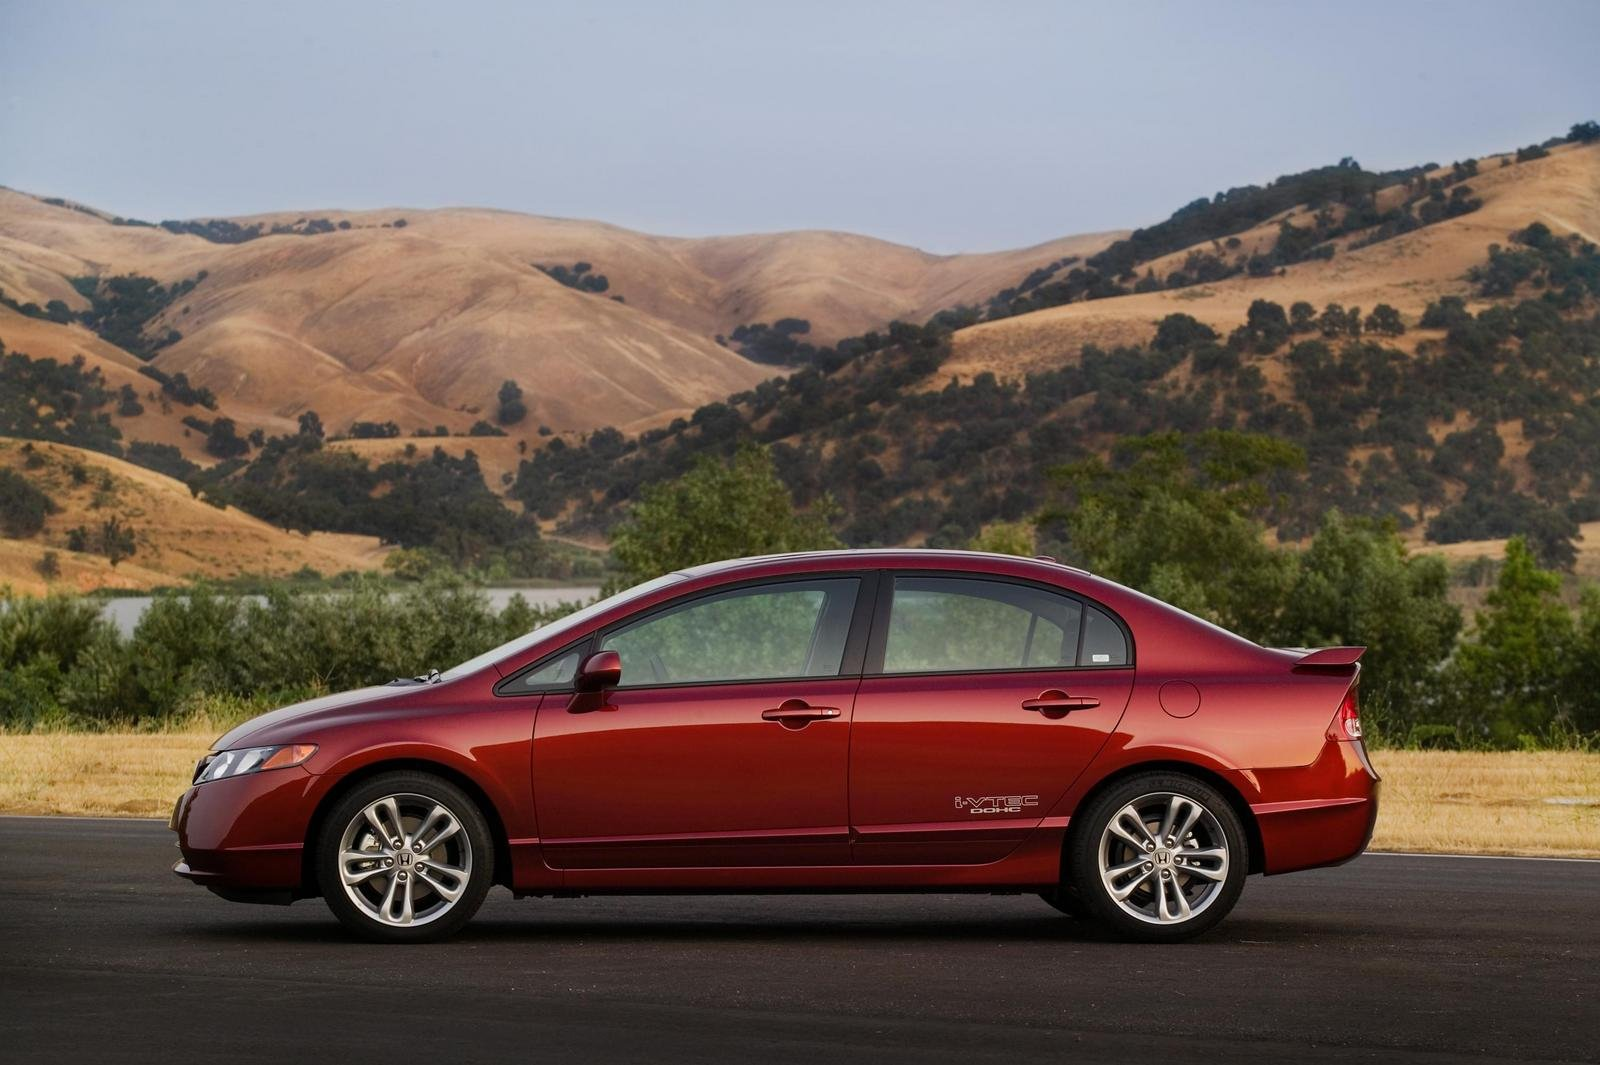 2008 honda civic si picture 200504 car review top speed. Black Bedroom Furniture Sets. Home Design Ideas